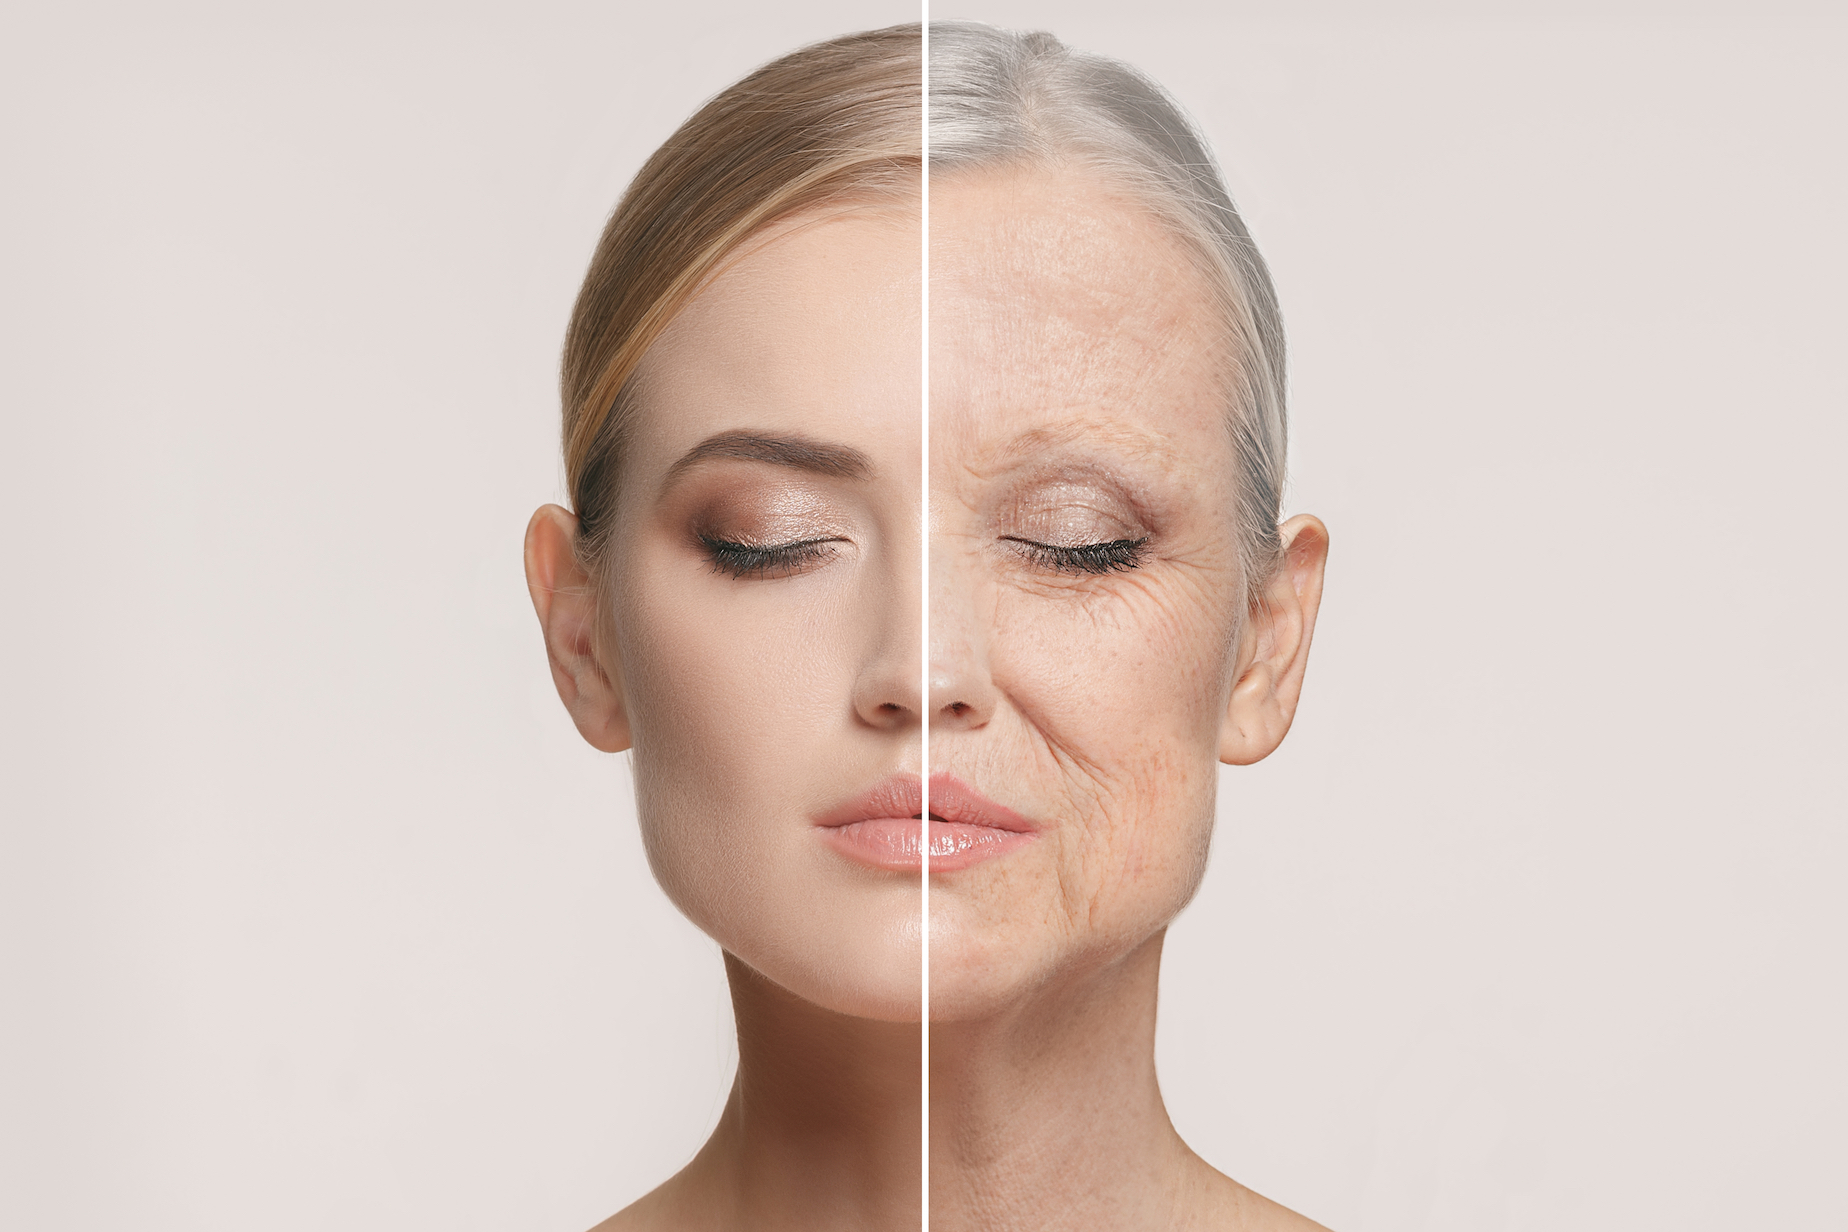 Aging is primarily caused by genes, and not by the physical or cognitive decline that is associated with getting older.